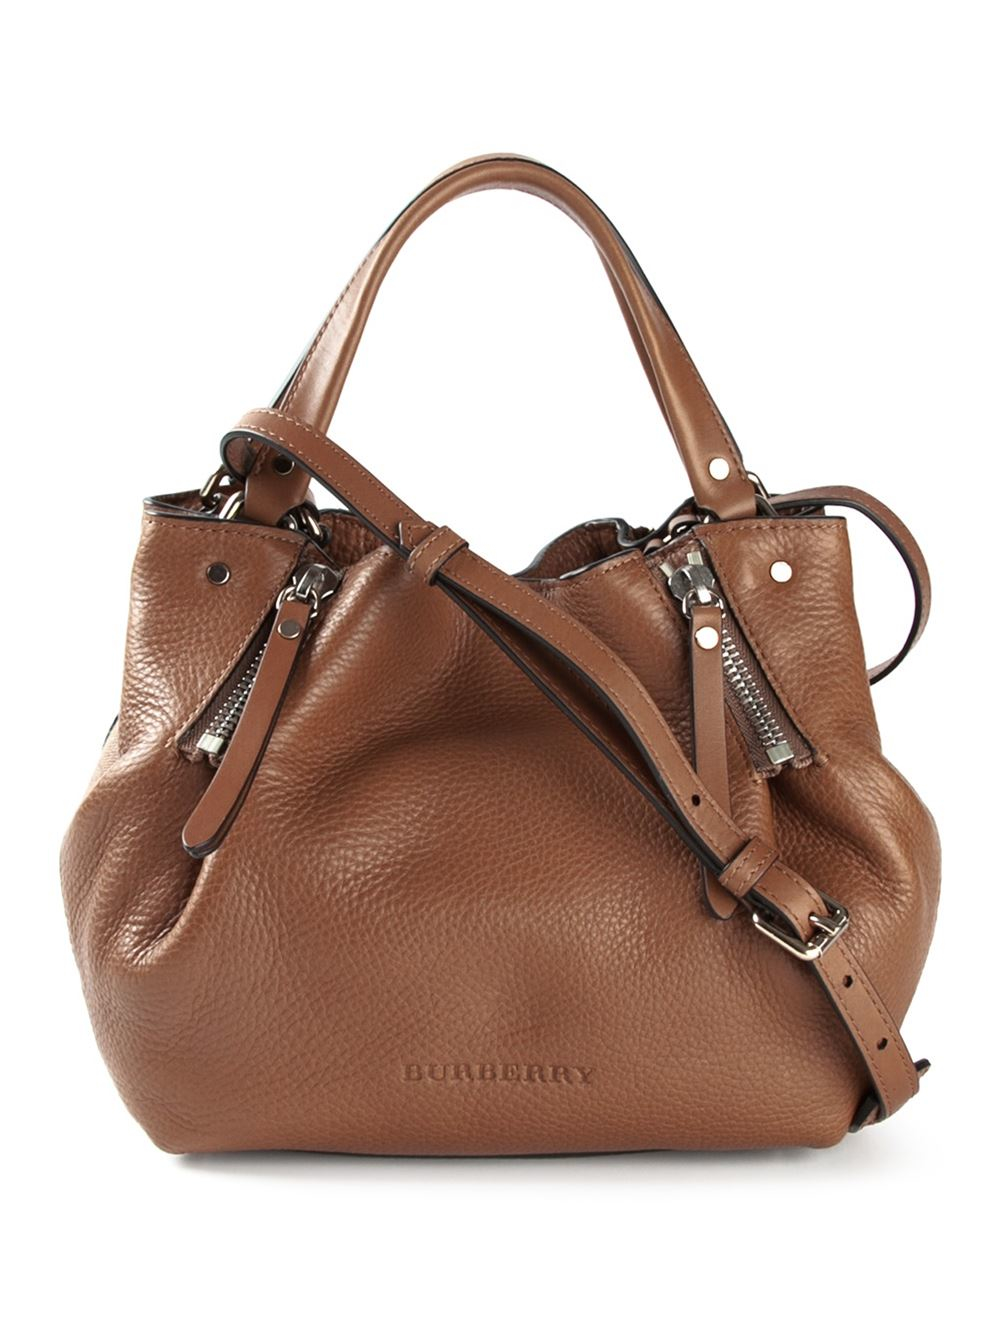 623dd38ca2e3 Keeping Burberry Small Bags   Lyst burberry maidstone small bag in brown